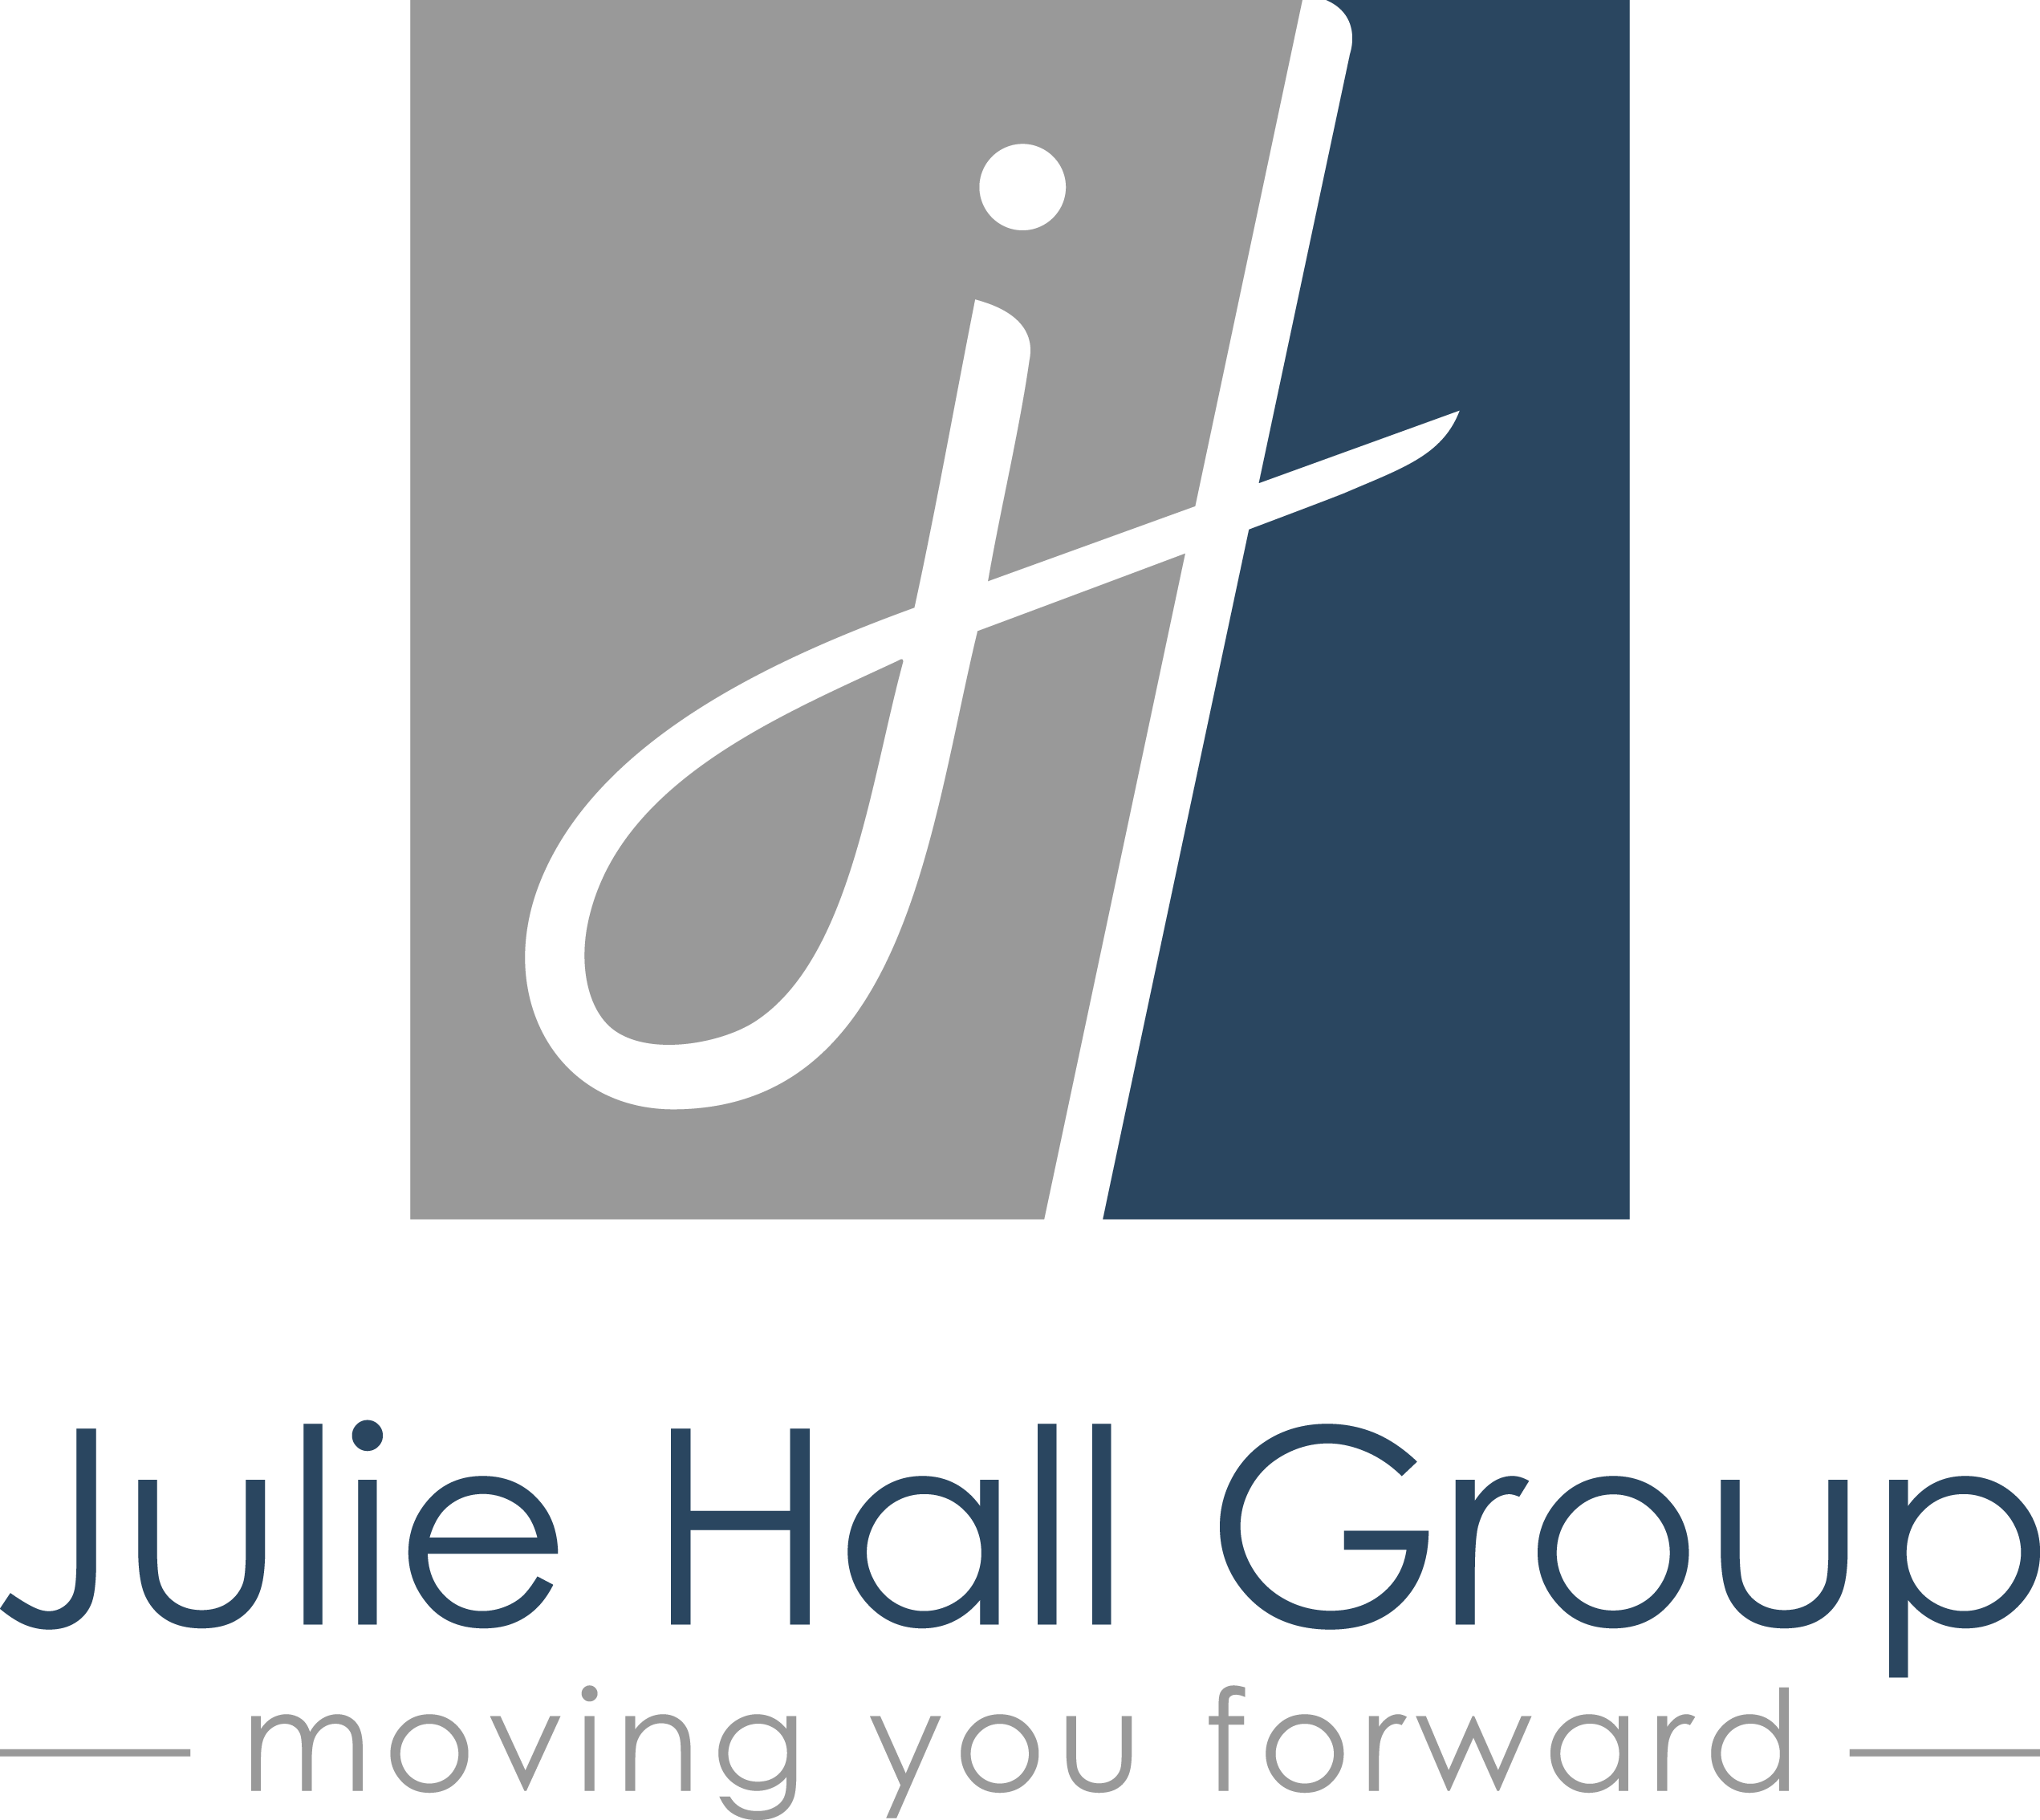 The Julie Hall Group logo